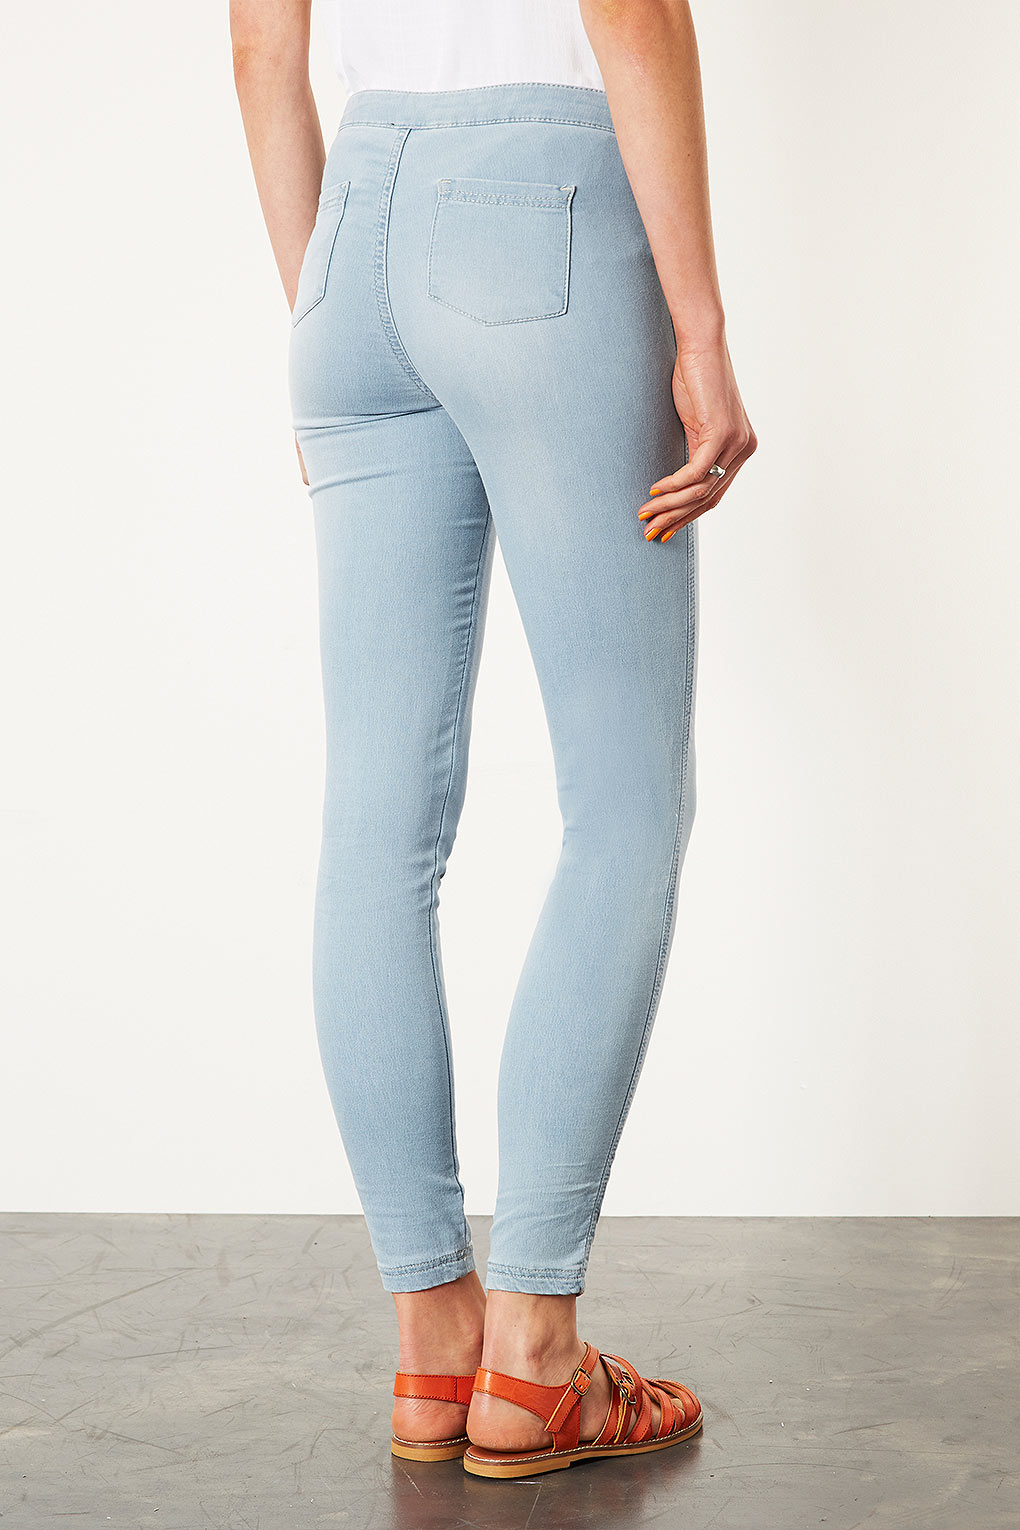 Topshop Jersey High Waist Jeggings in Blue | Lyst